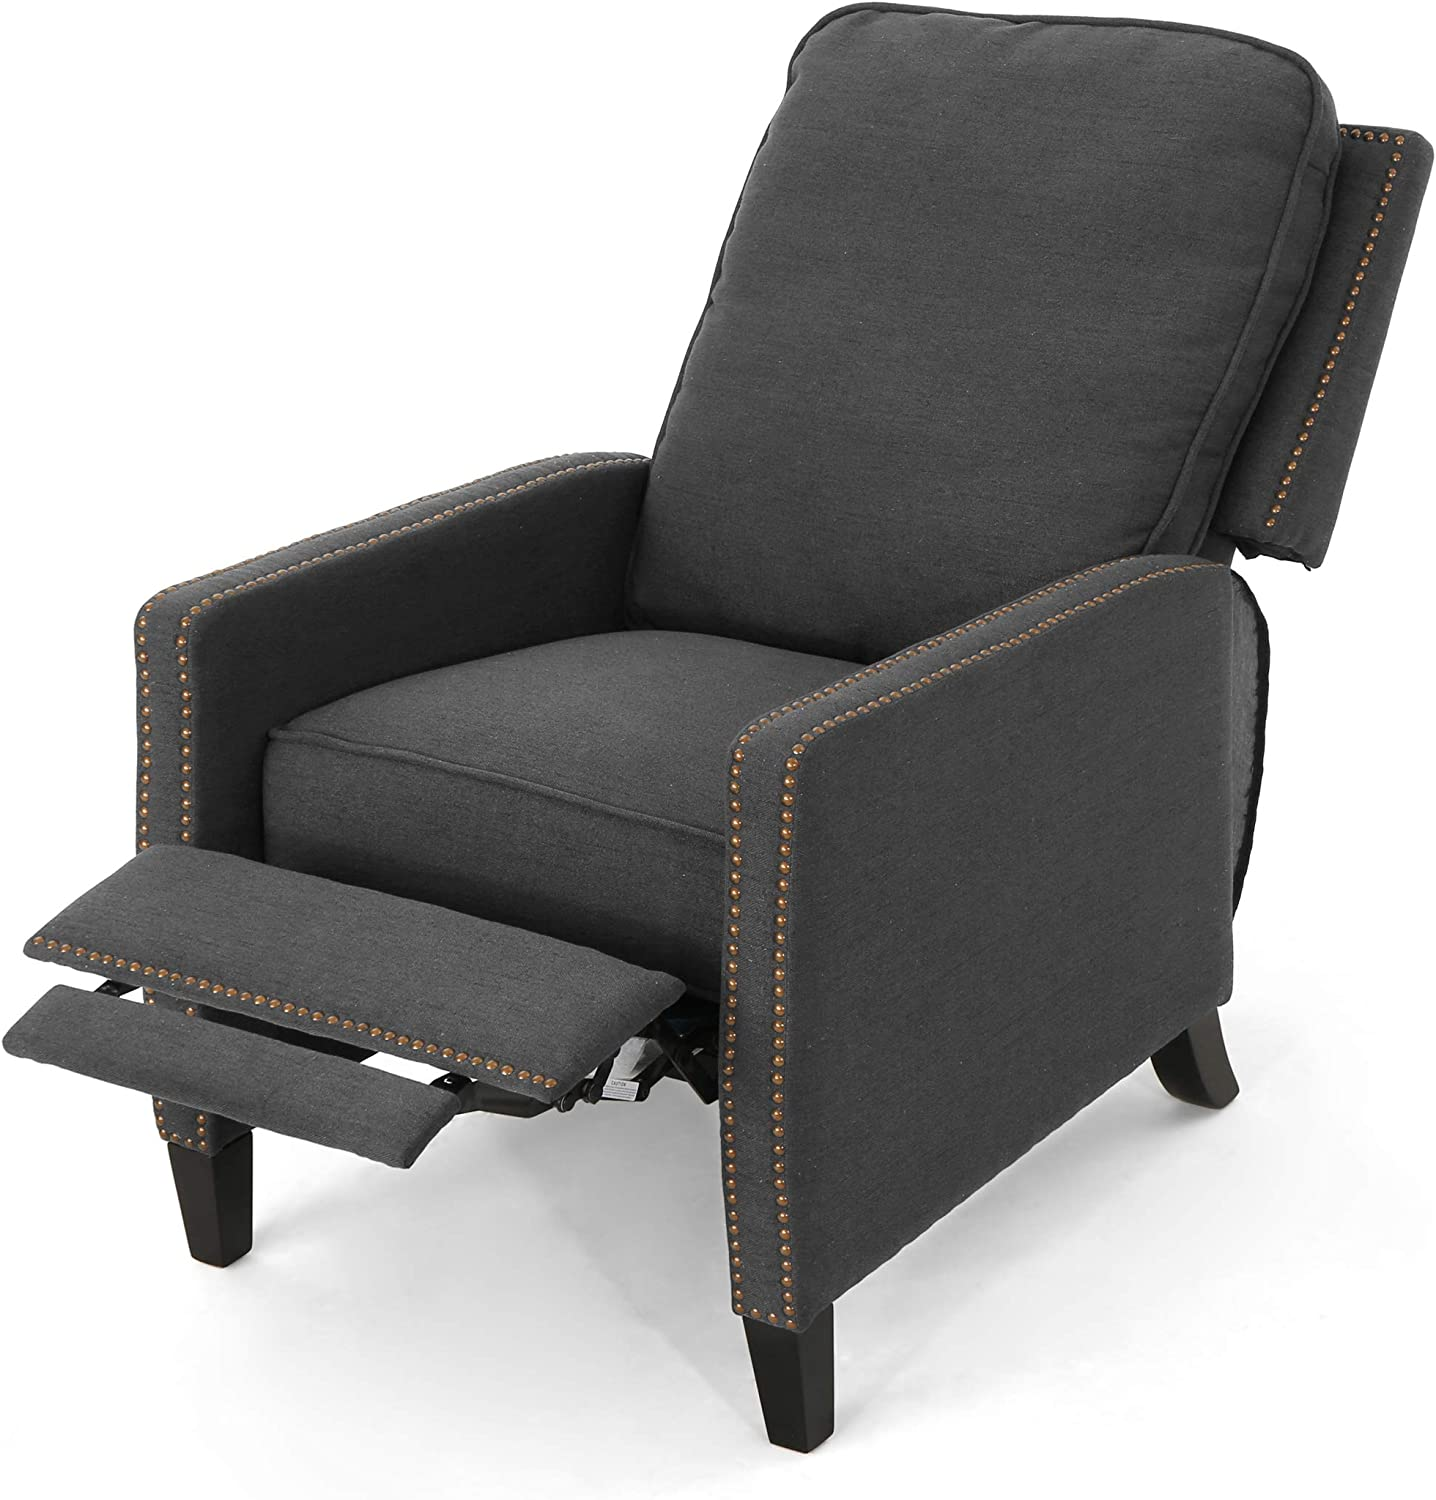 Christopher Knight Home Armstrong Recliner, Grey + Dark Brown